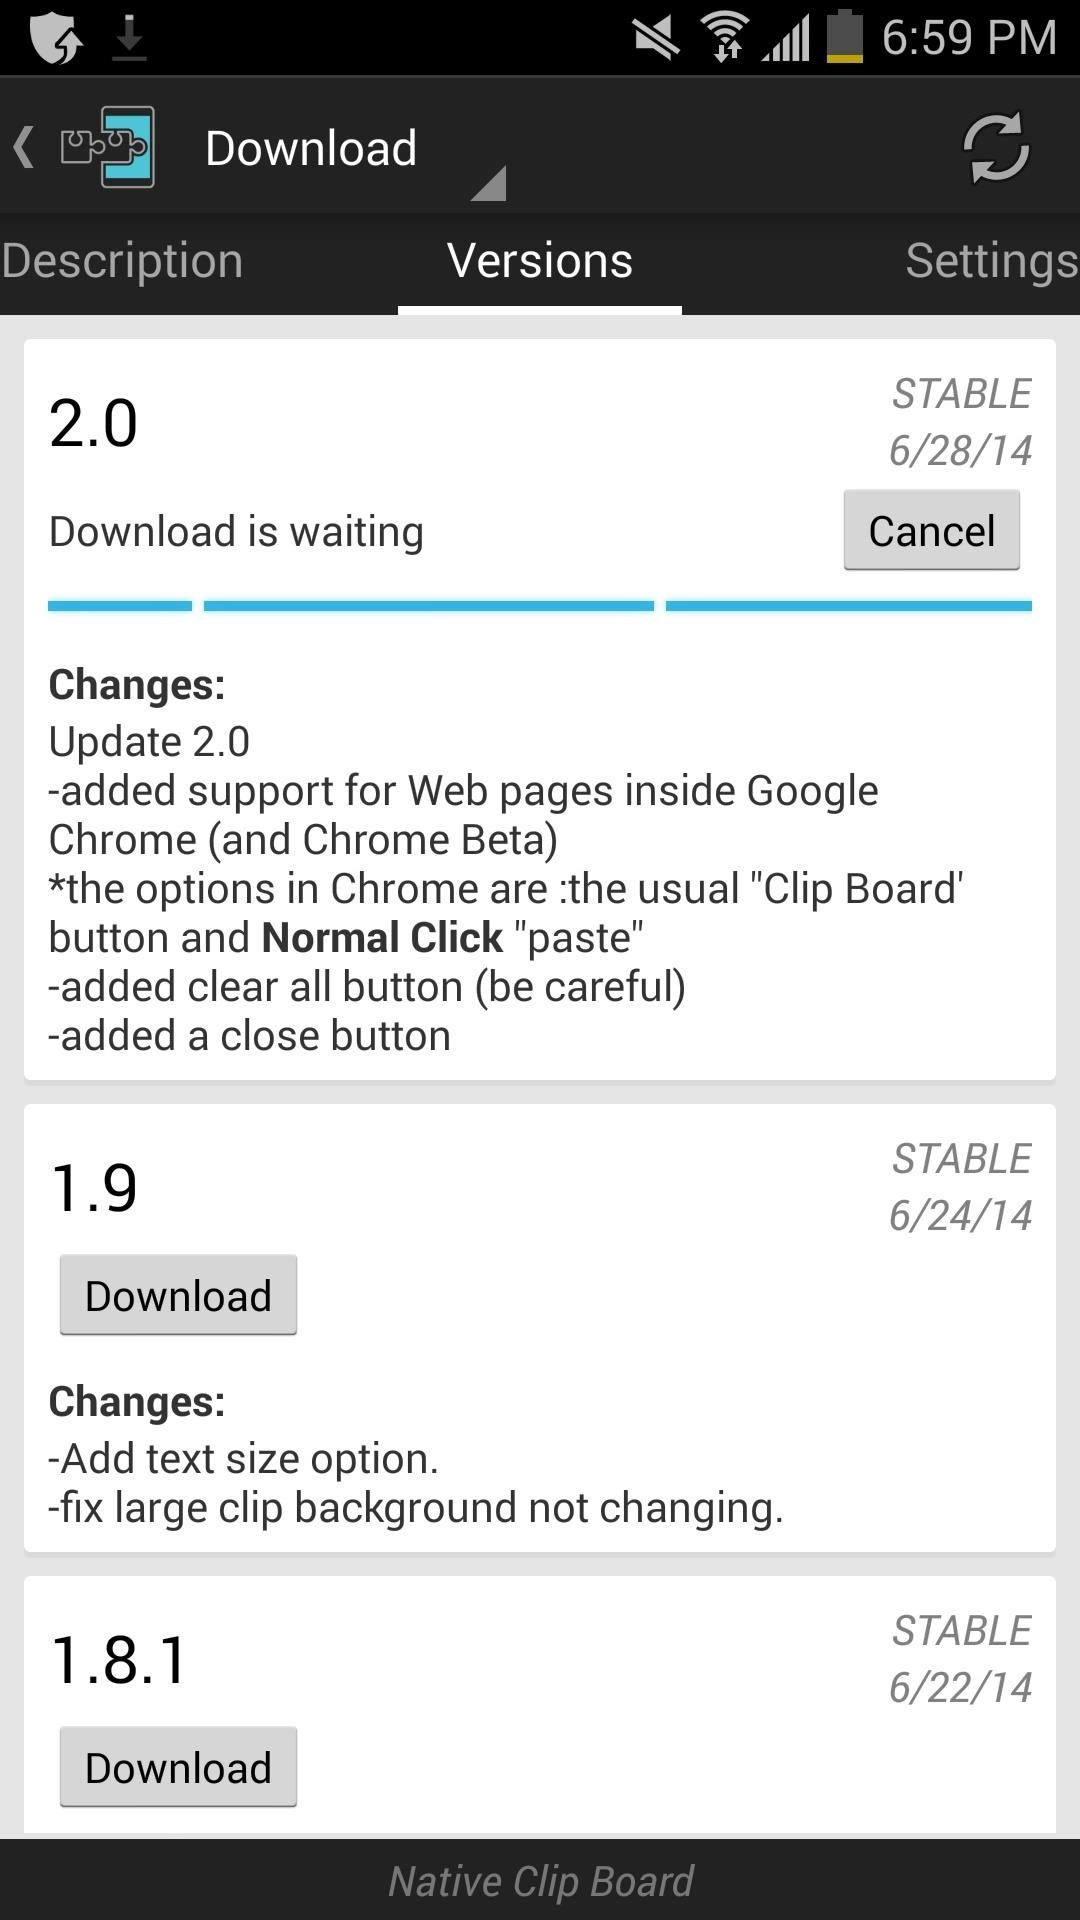 How to Add Native Clipboard Support to Your Samsung Galaxy Note 3